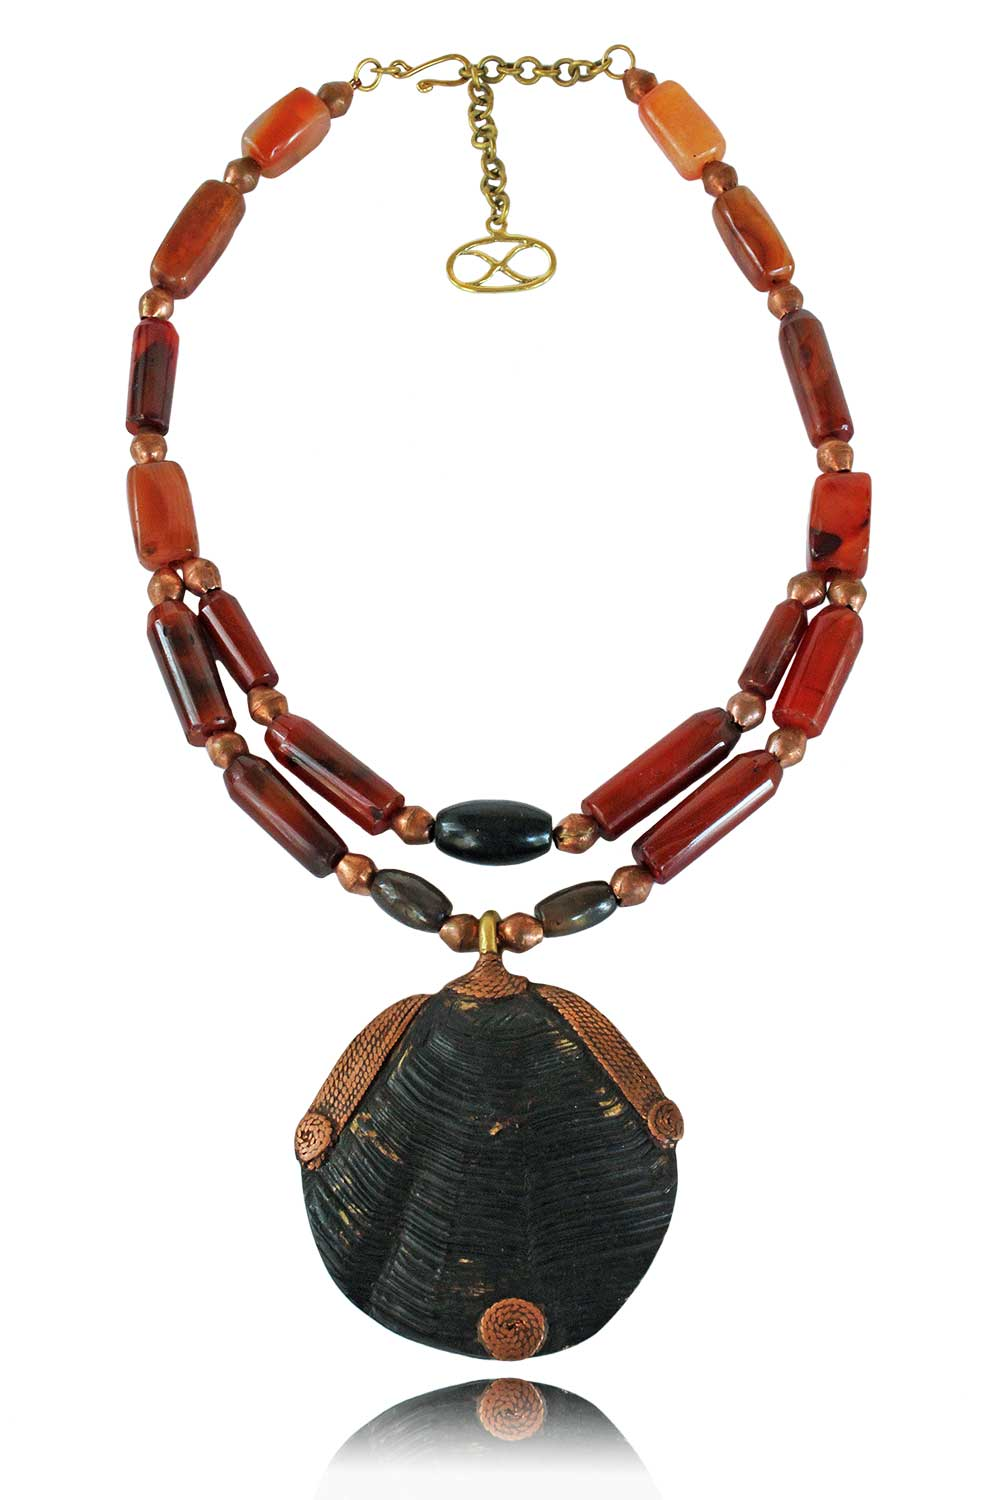 Izadi Tortoise Shell with Orange Agate Necklace by SHIKHAZURI